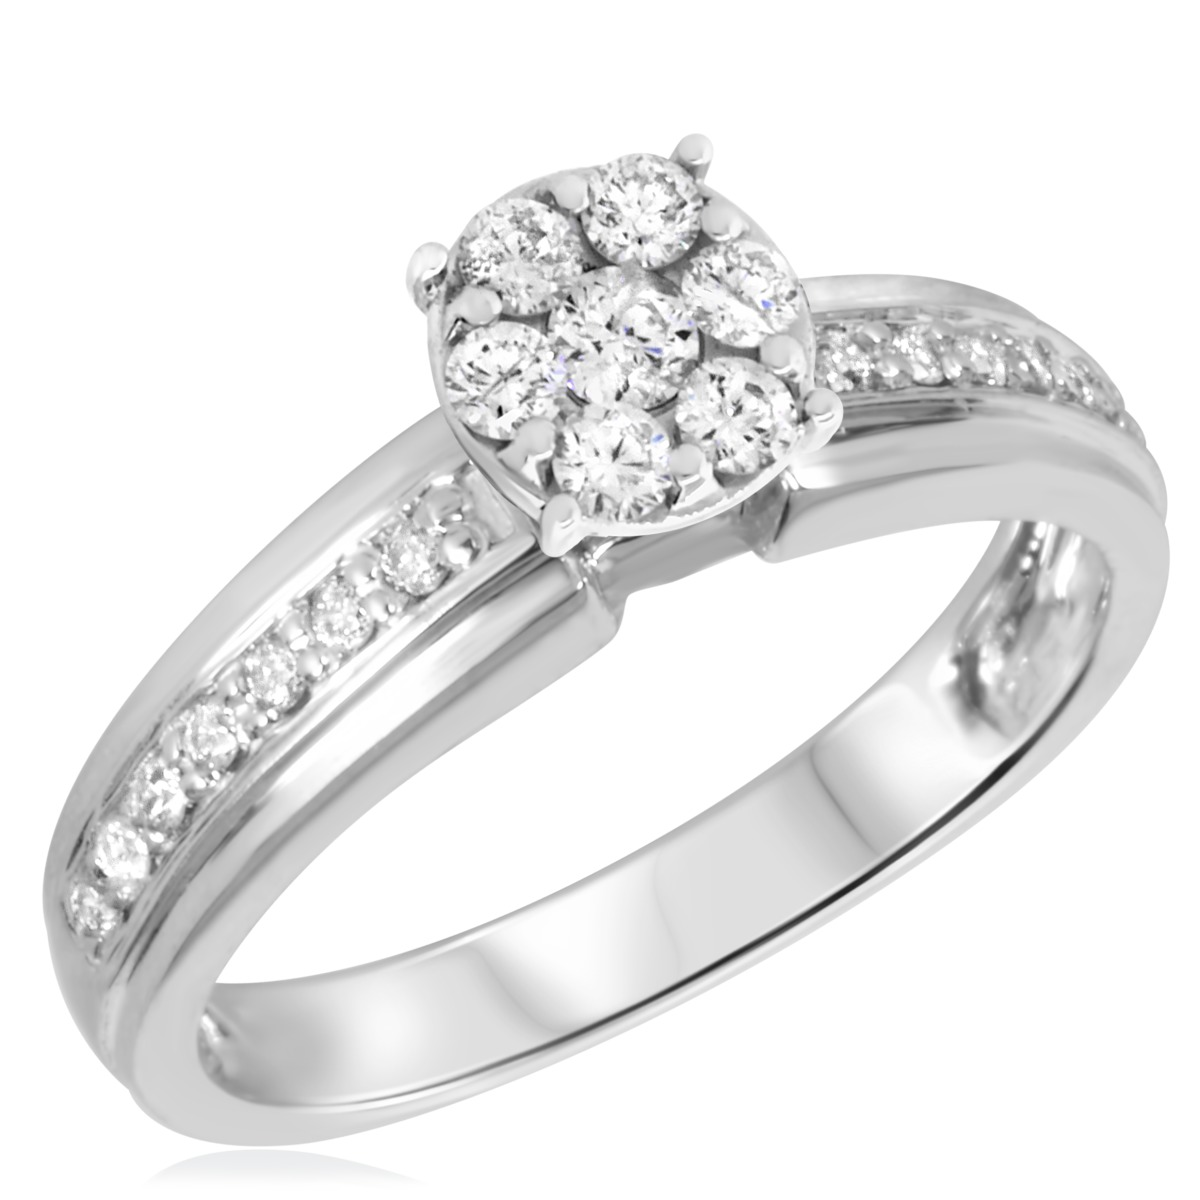 1/3 CT. T.W. Diamond Ladies Engagement Ring 10K White Gold